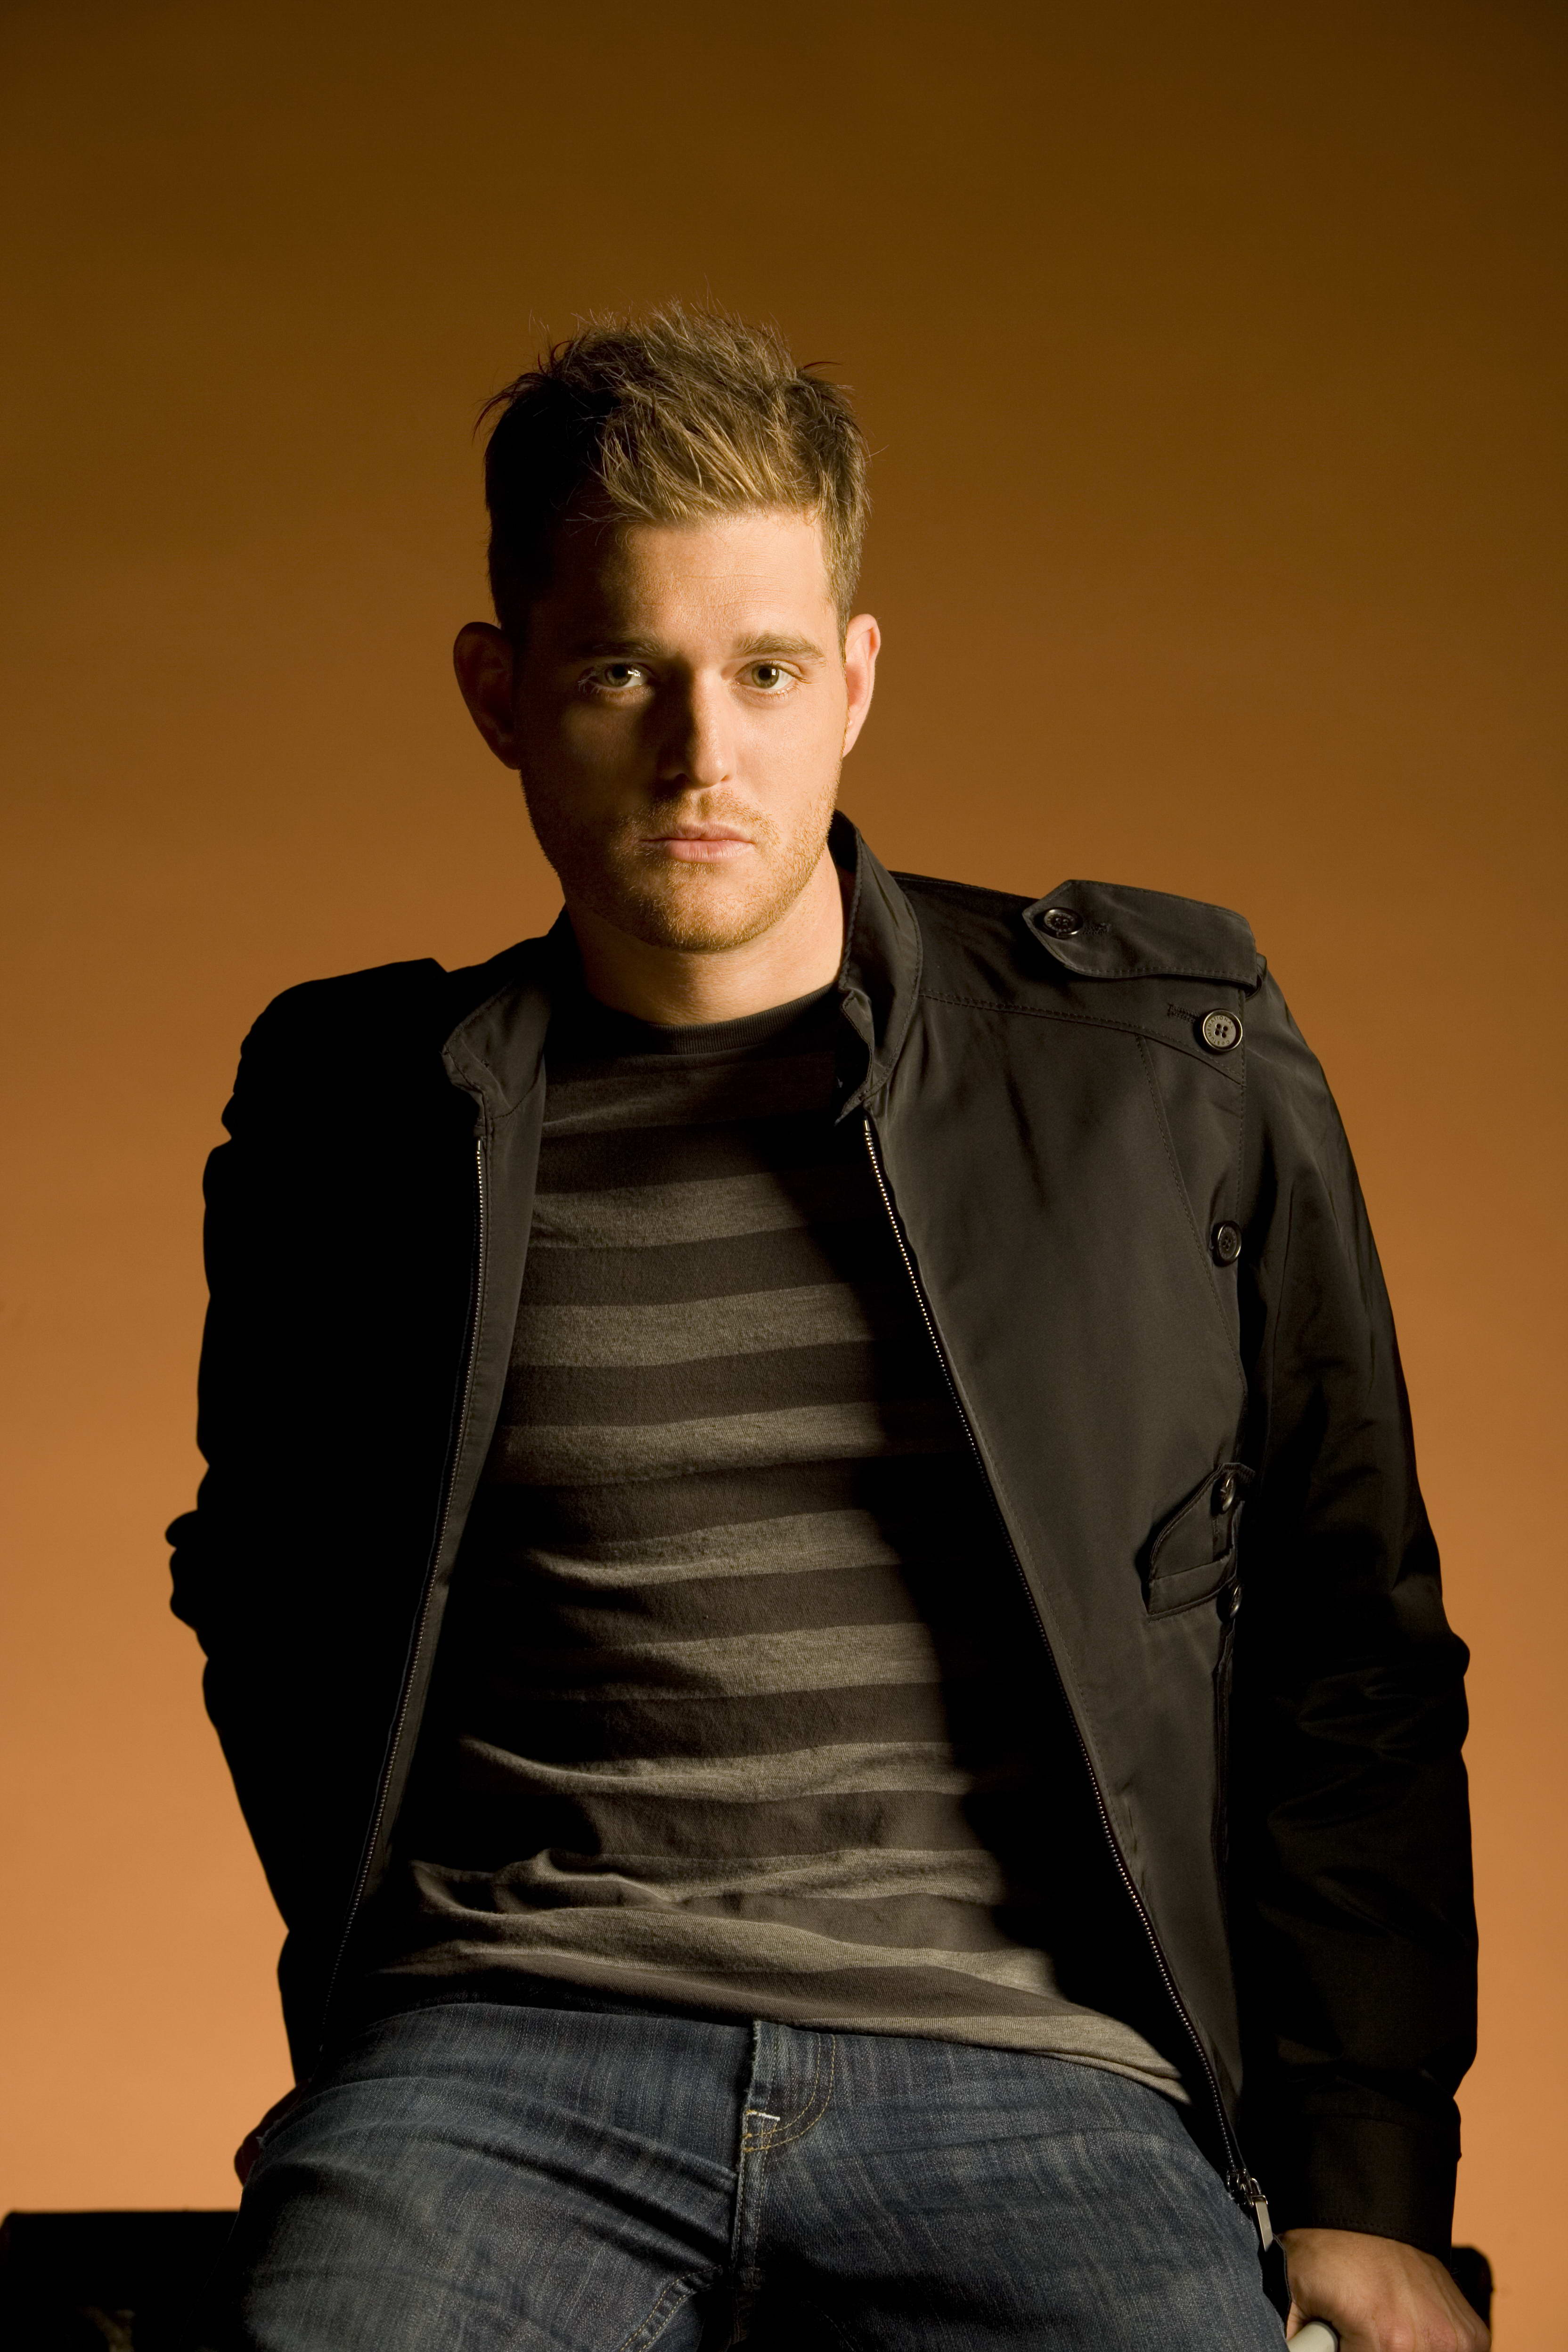 Michael Buble photo 37 of 44 pics, wallpapers